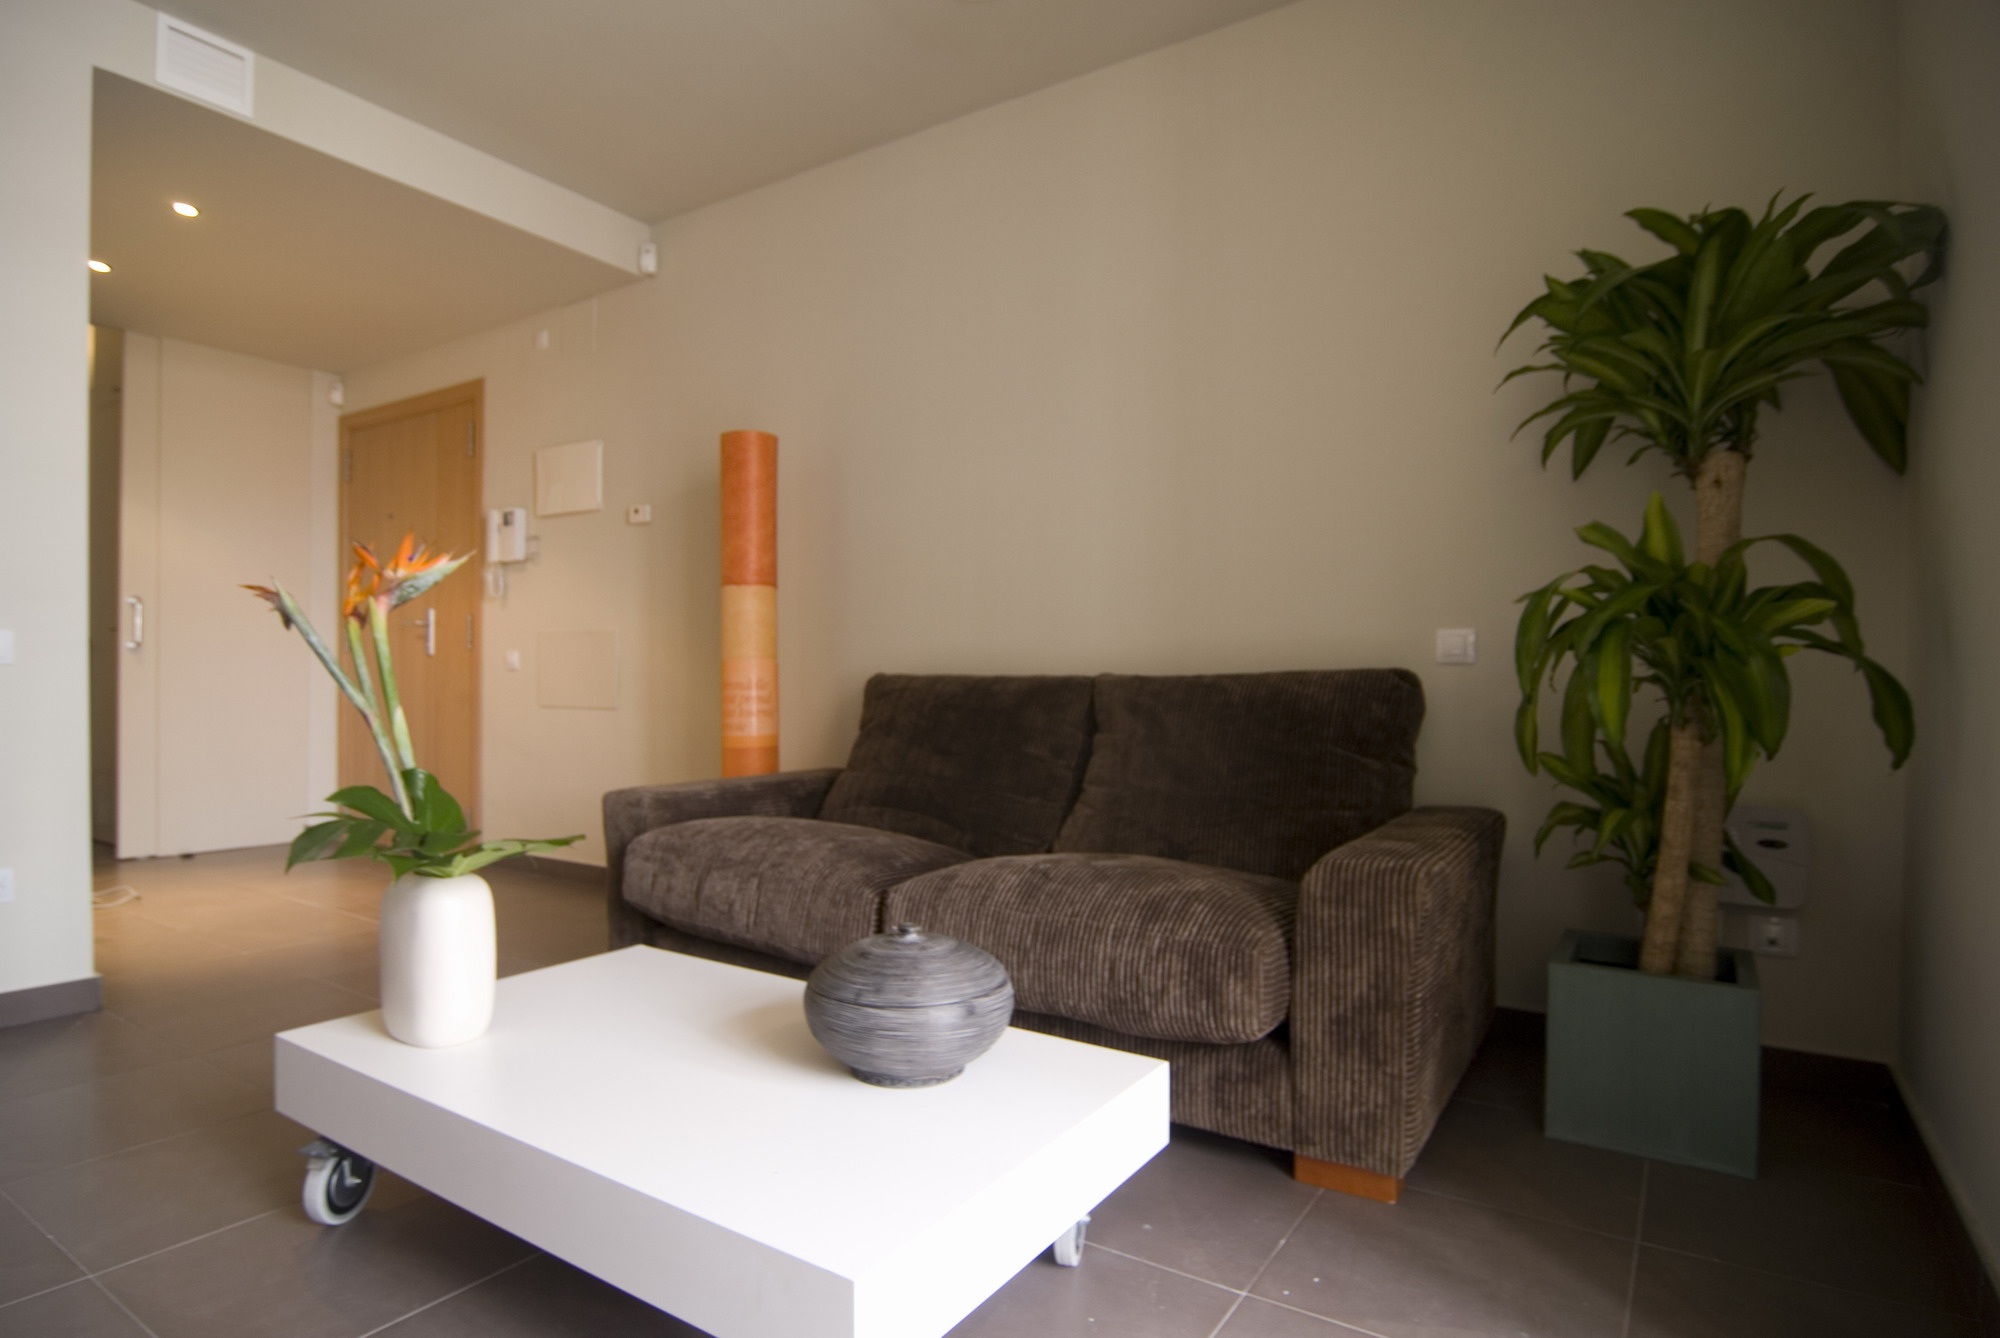 Unfurnished 1 bedroom apartment for rent in Eixample